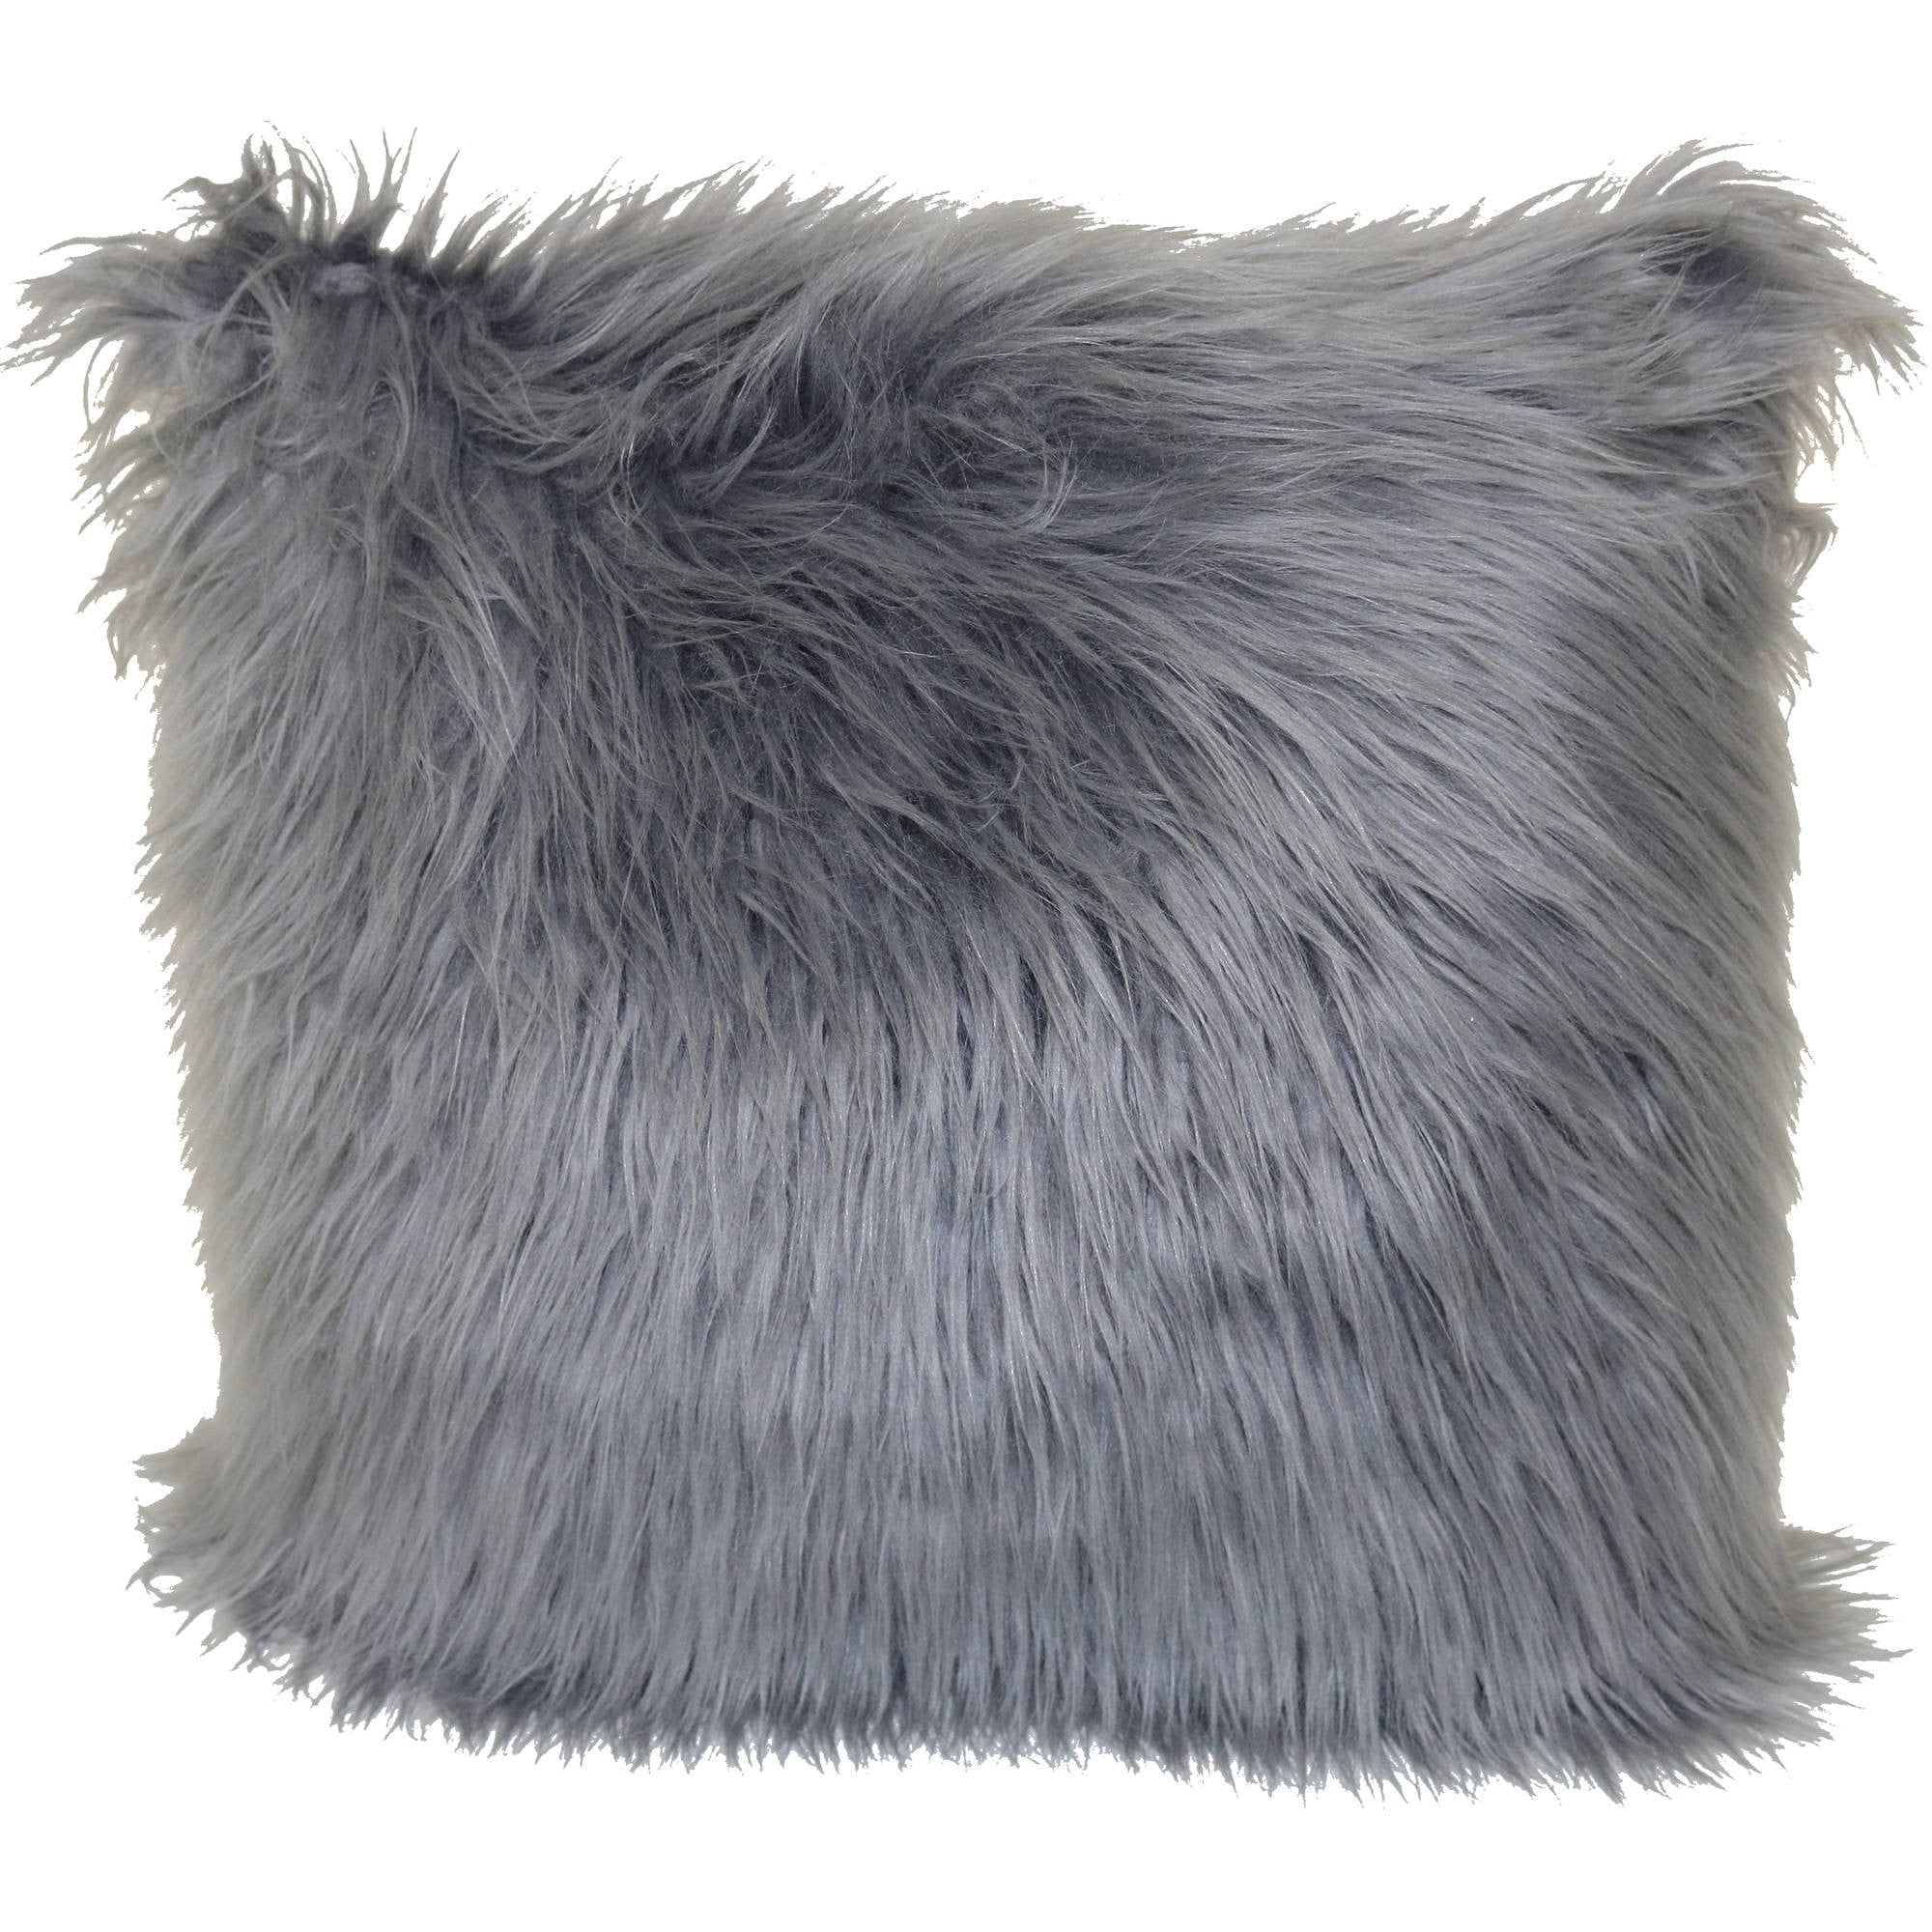 "Better Homes and Gardens Angora Decorative Throw Pillow, 20"" x 20\ by Brentwood Originals"